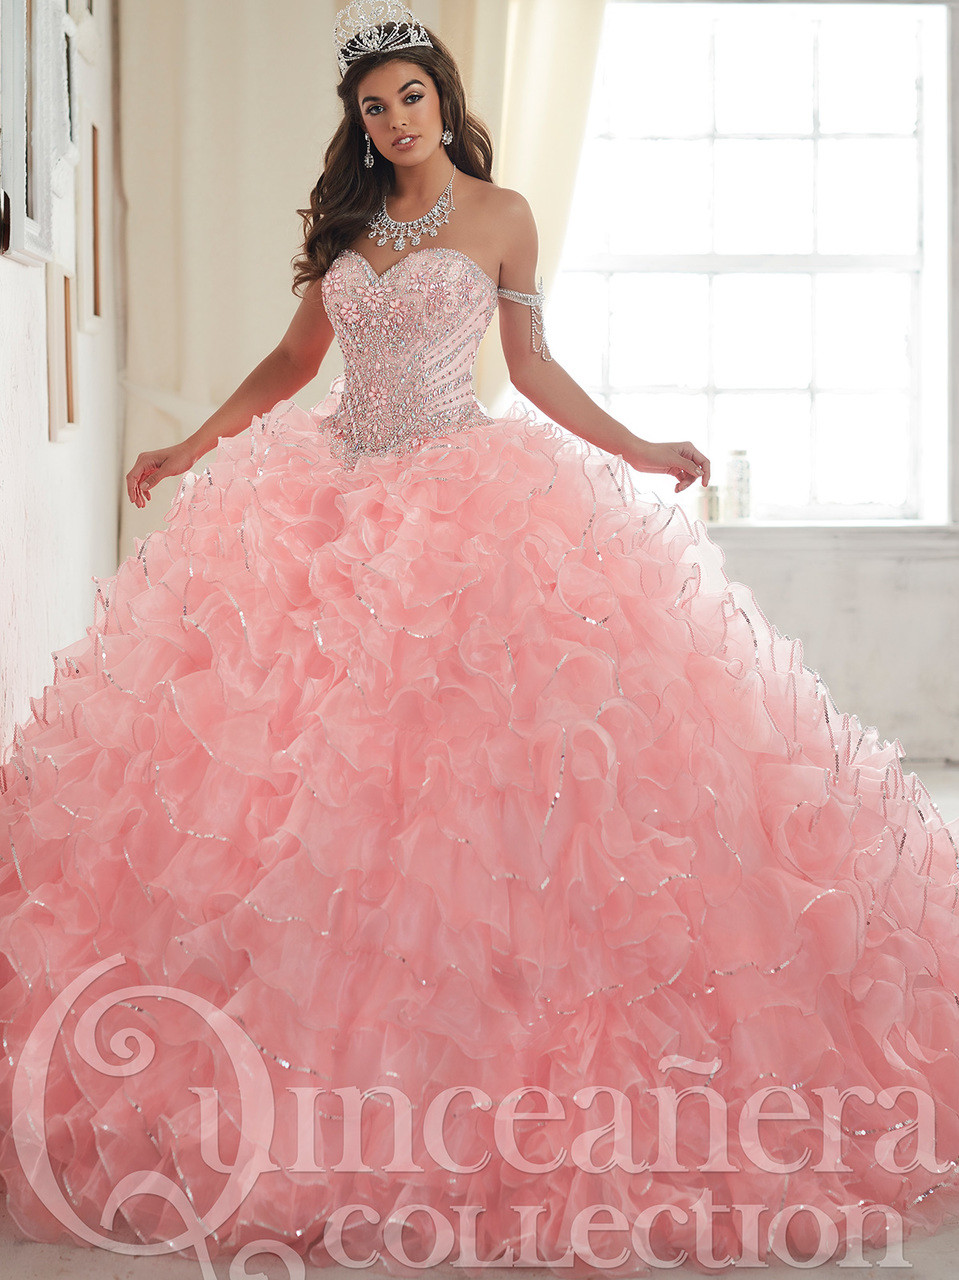 a90c302956d Quinceanera Collection Quince Dress 26845